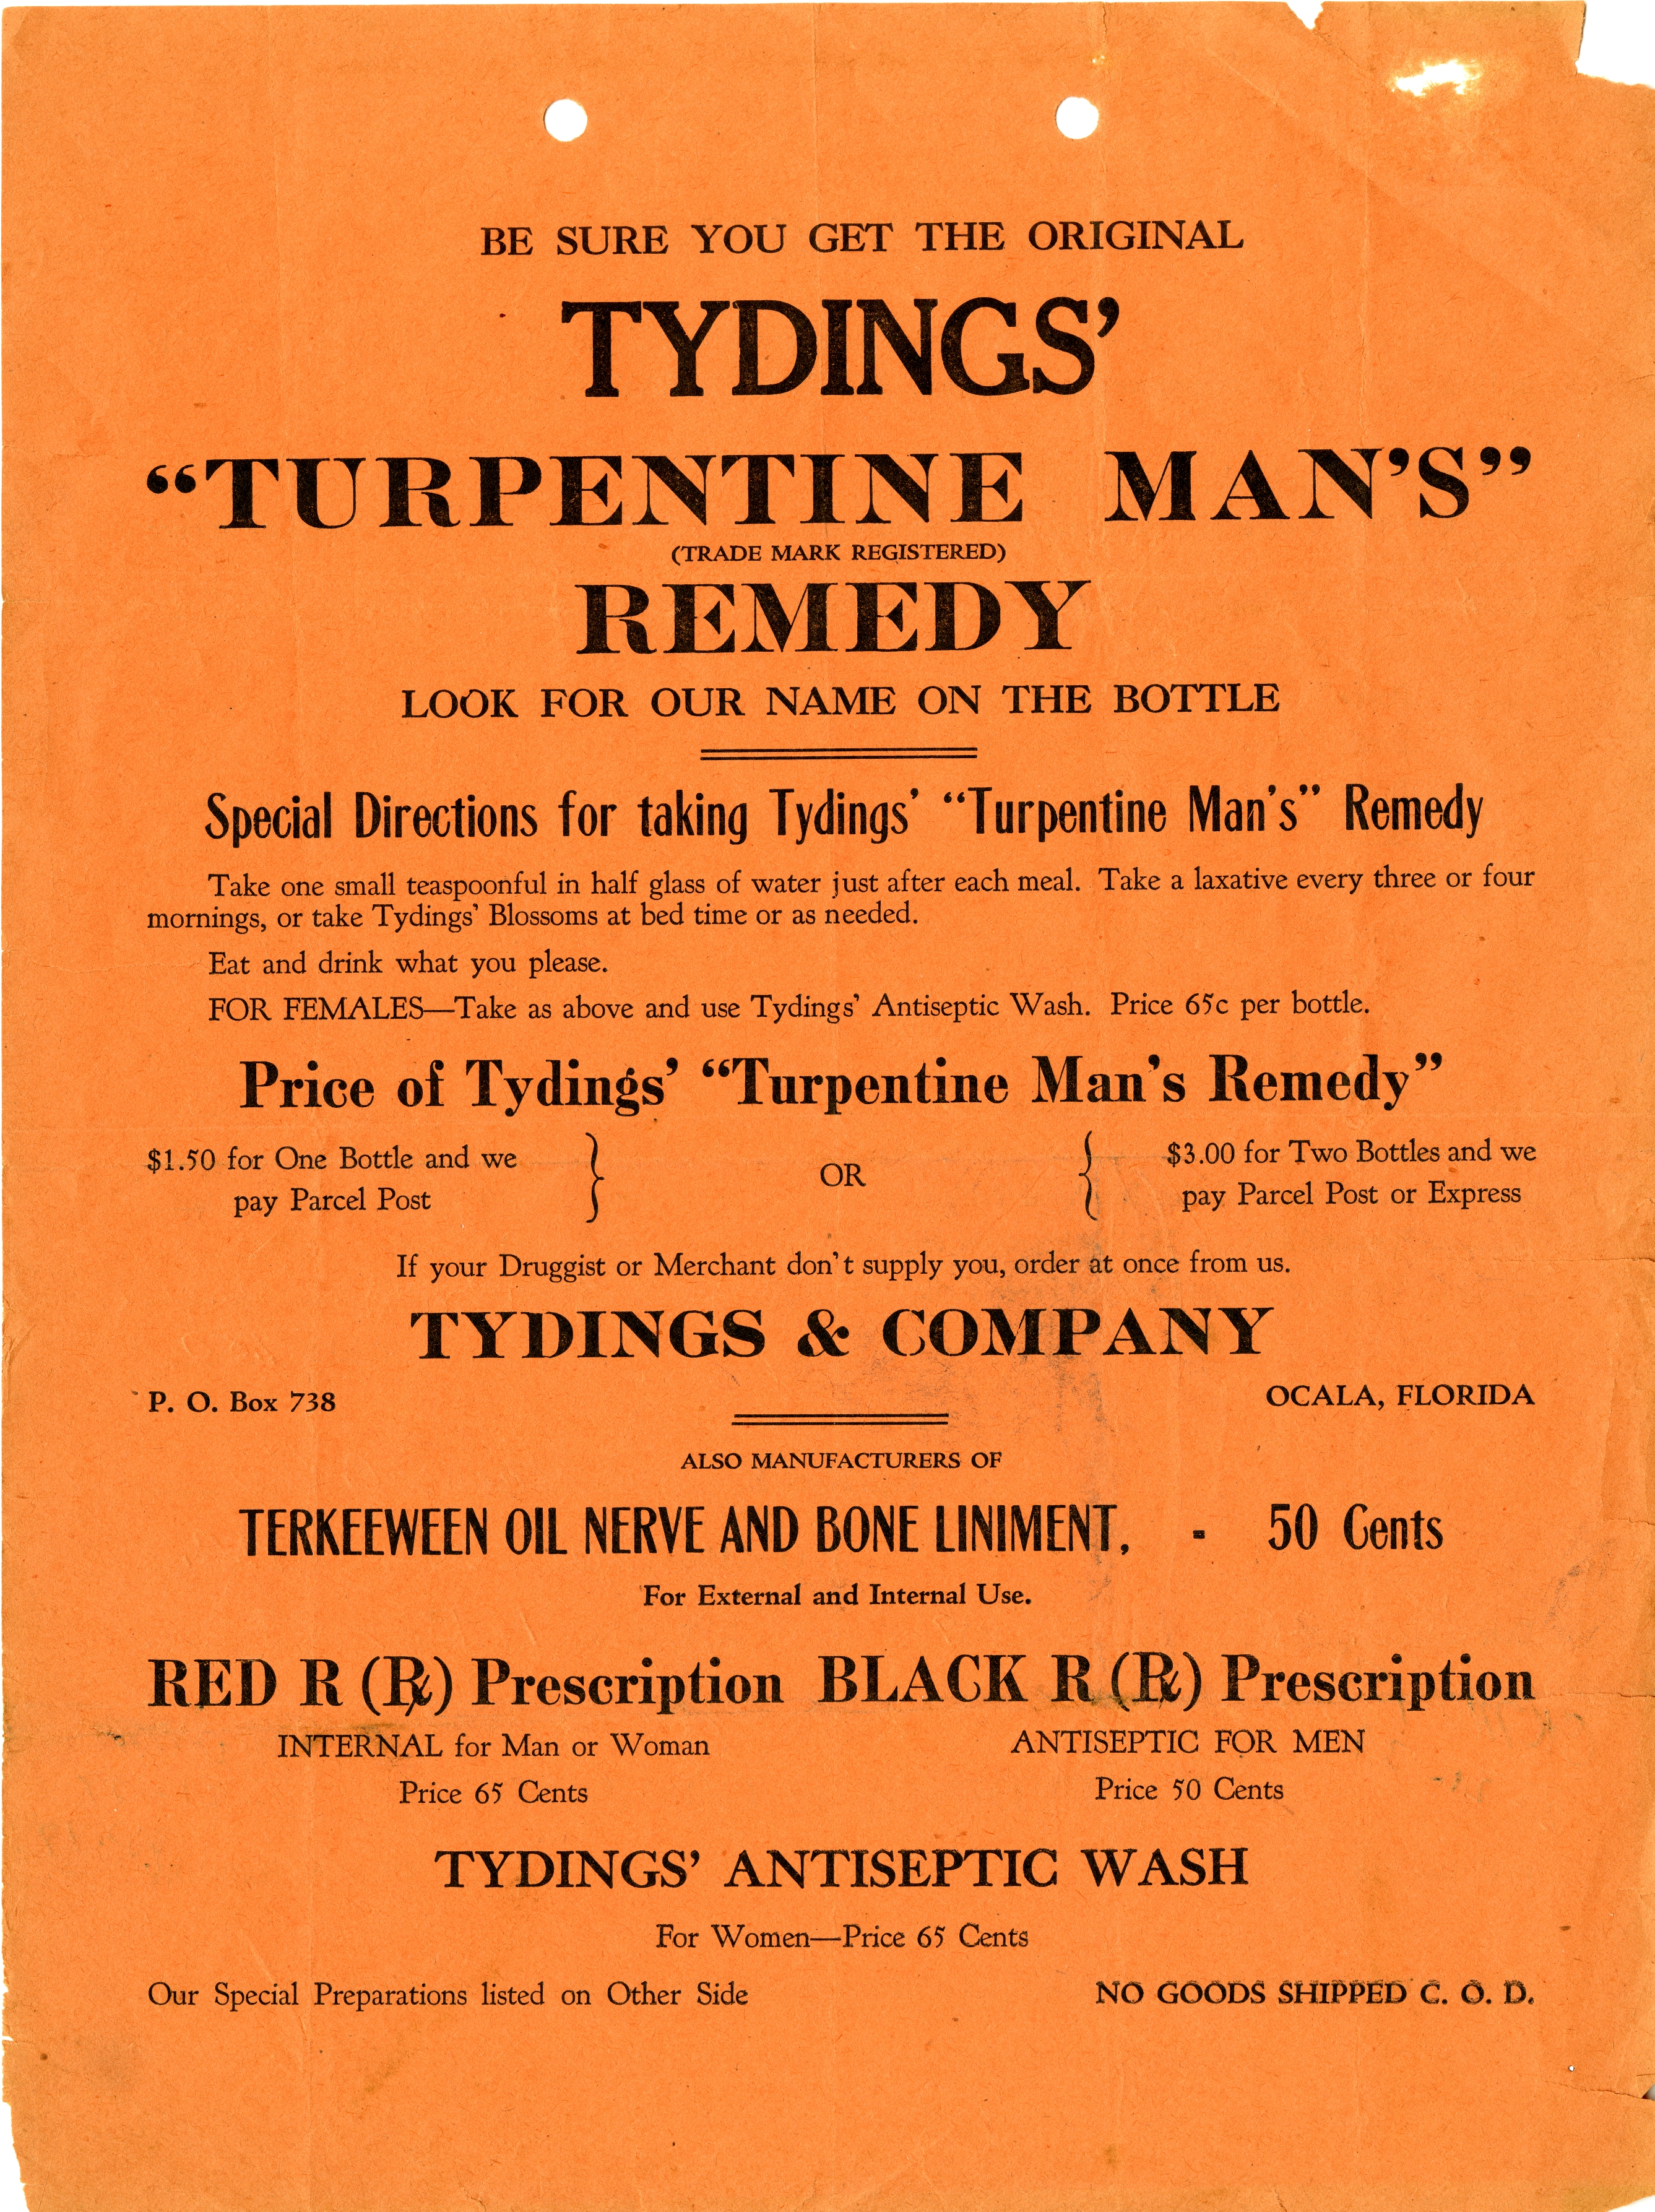 Be sure you get the original Tydings' 'Turpentine man's' remedy.